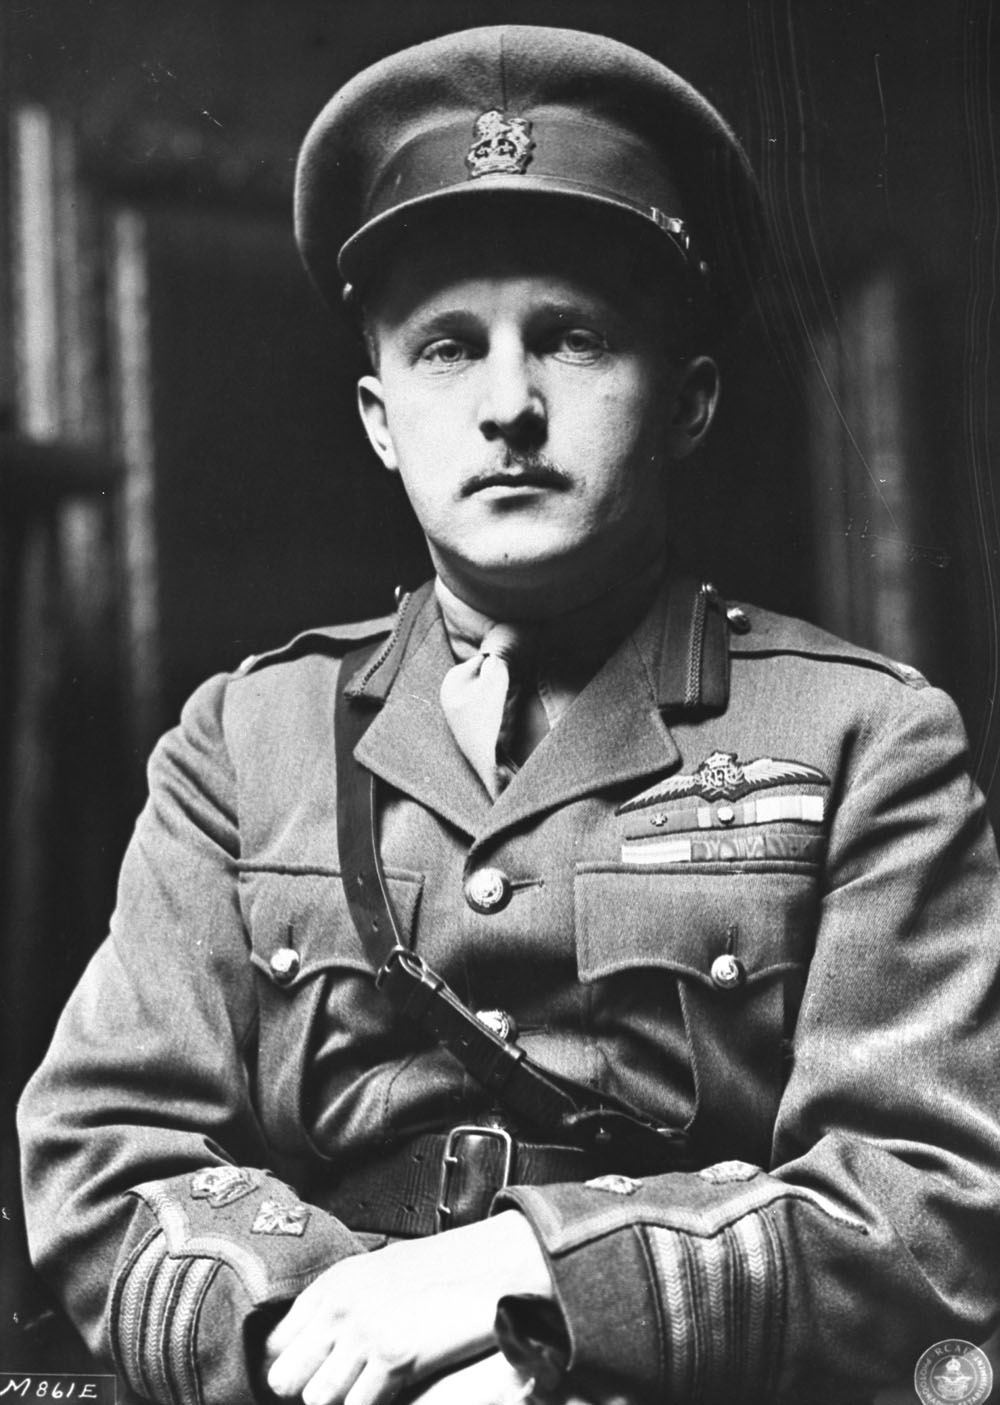 An old black and white photo of a seated man wearing a military uniform, looking at the camera.